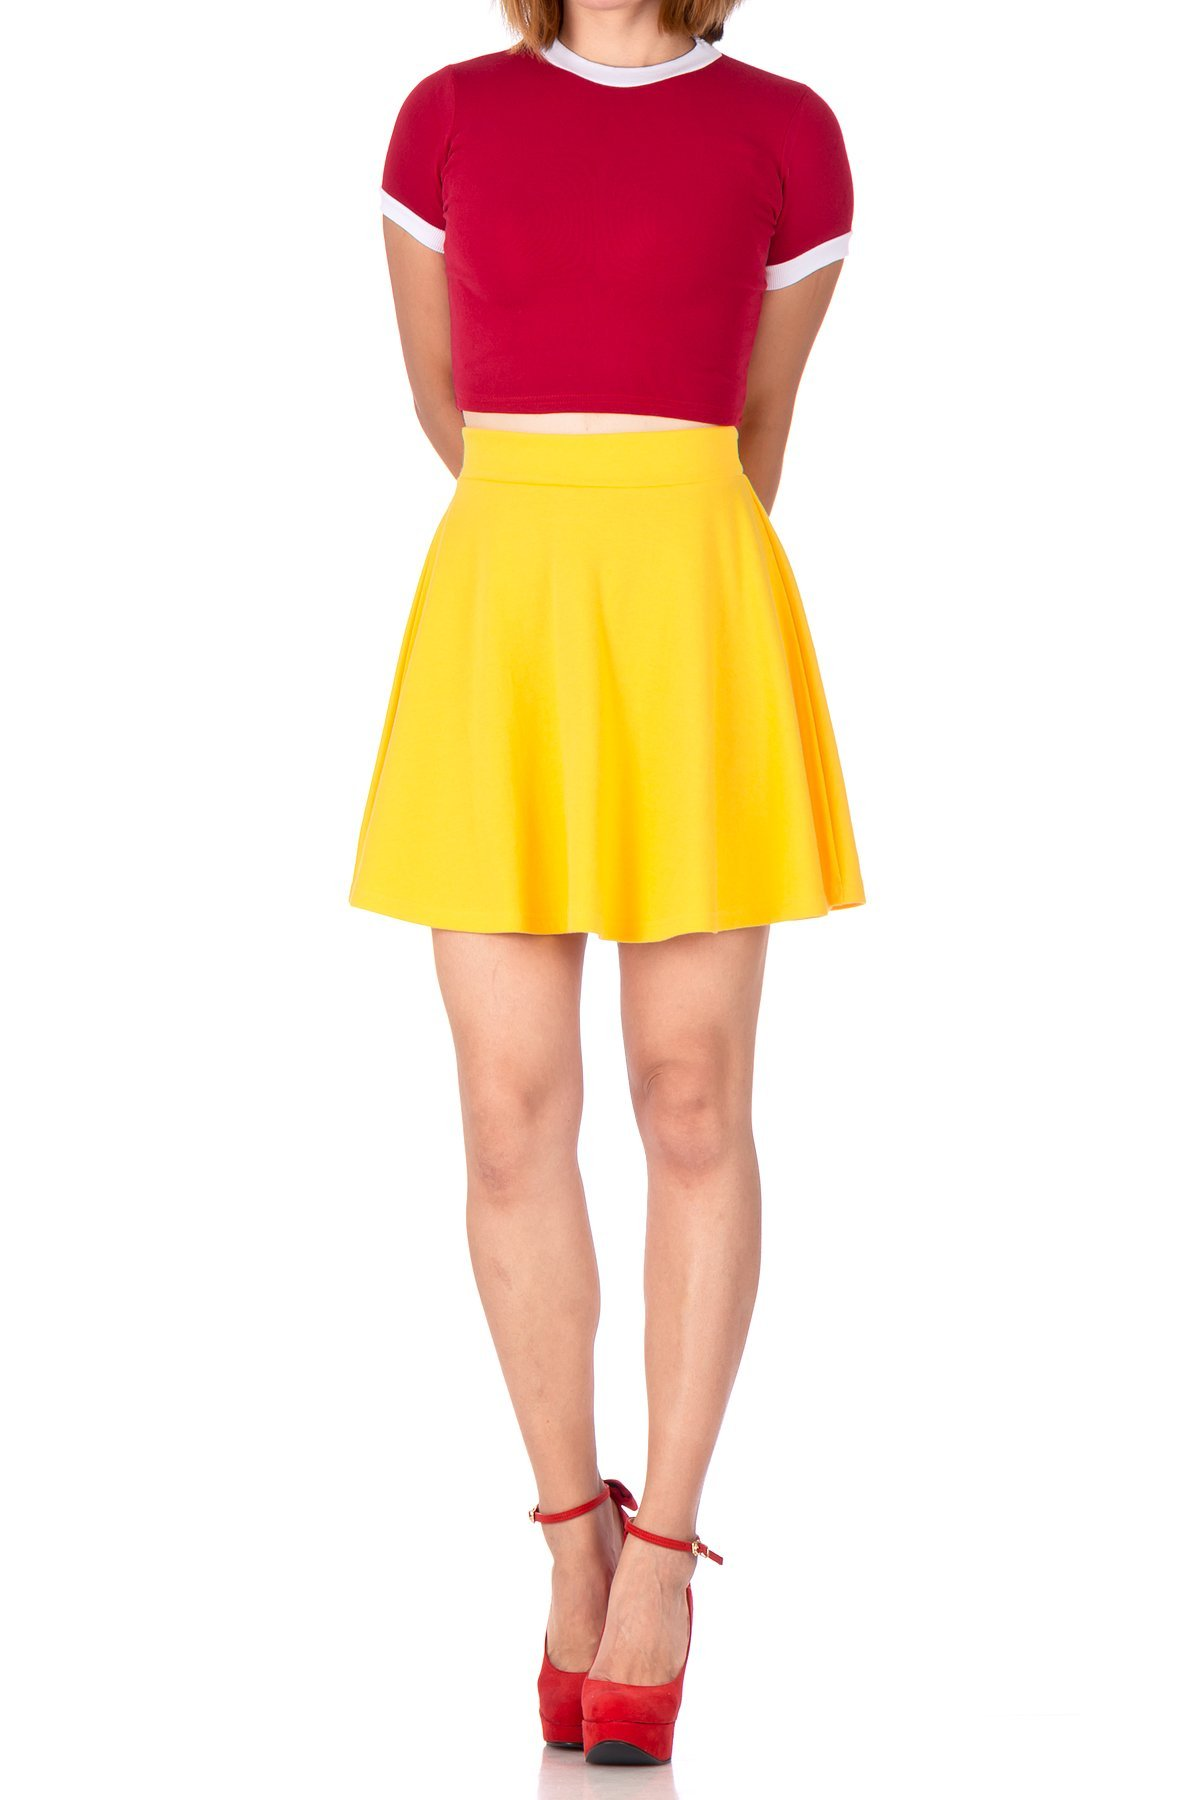 Basic Solid Stretchy Cotton High Waist A line Flared Skater Mini Skirt Yellow 02